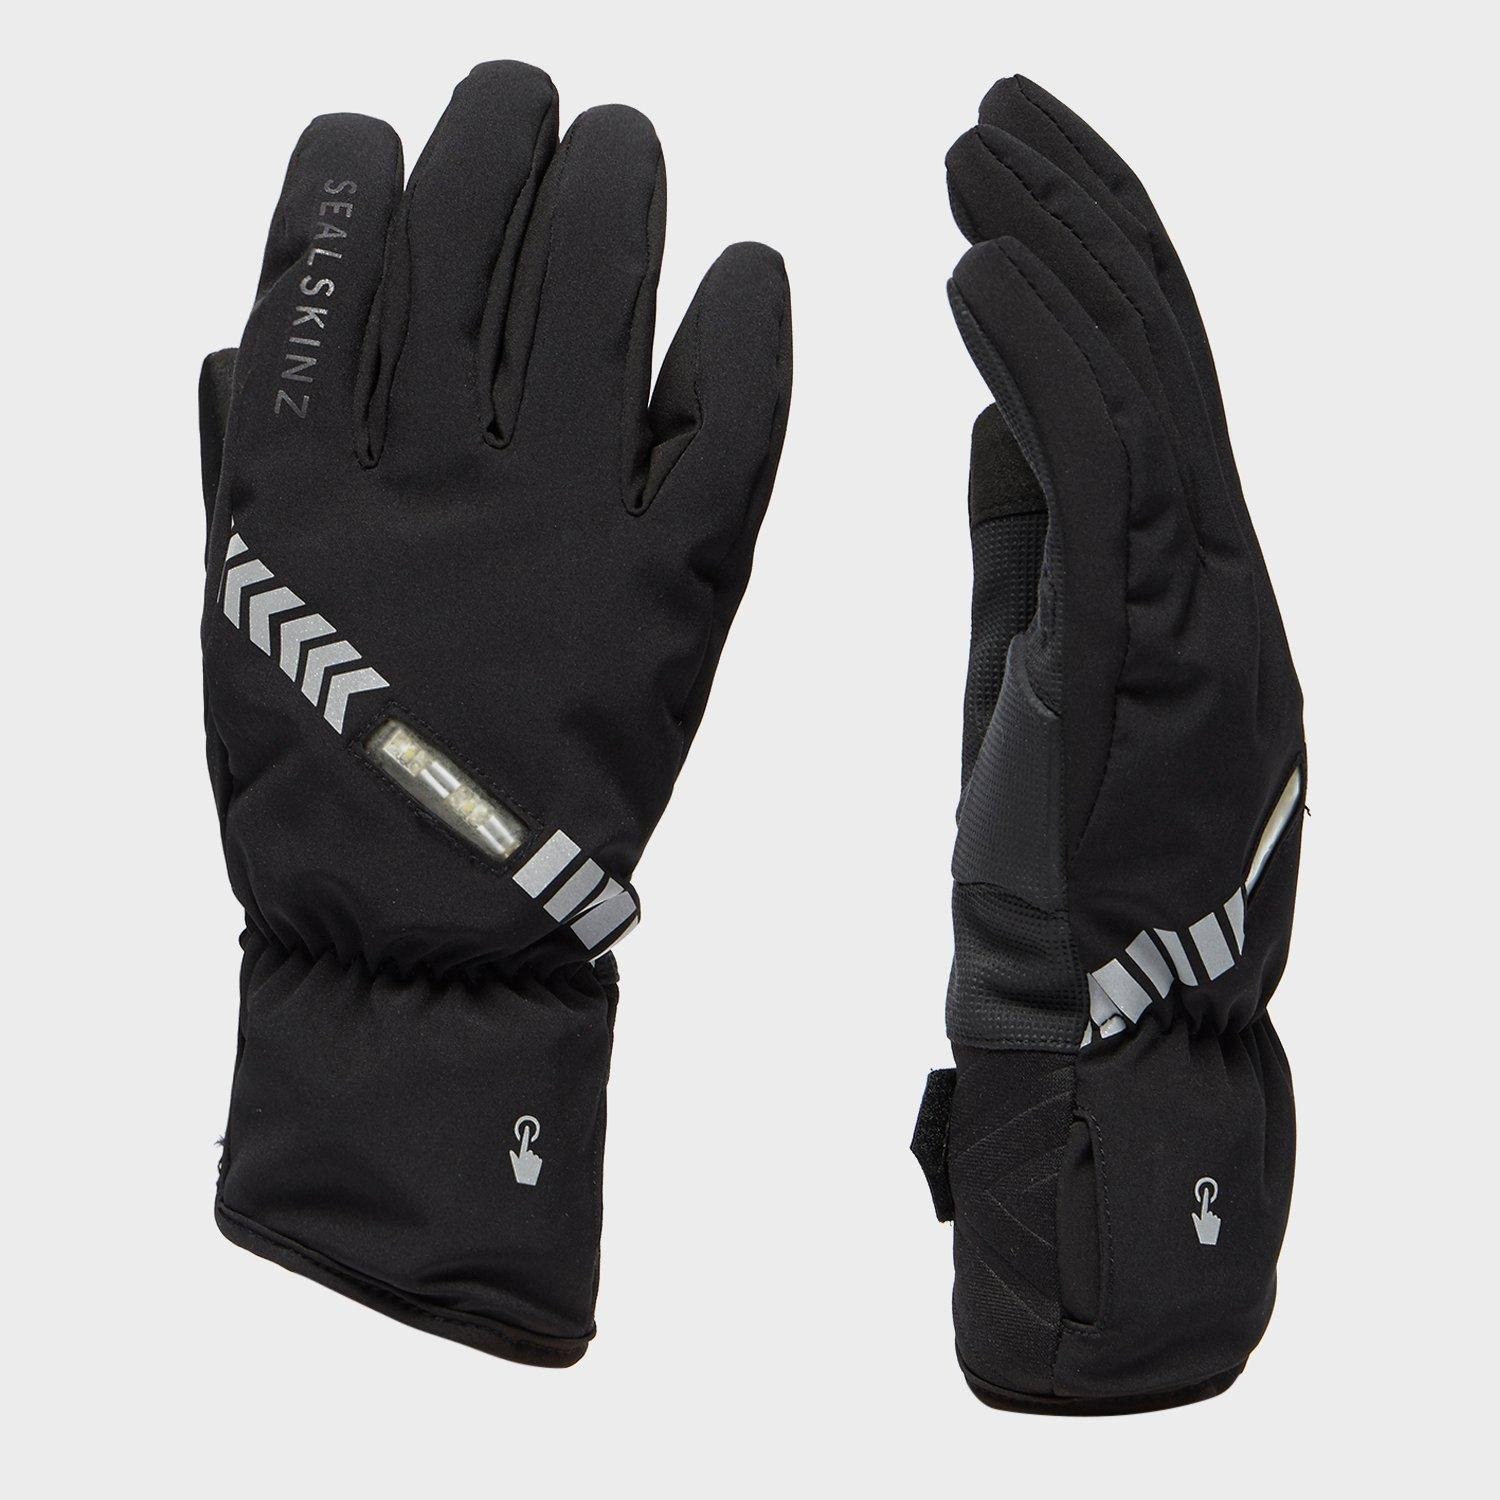 Bargain Sealskinz Halo All Weather Cycling Gloves, Black Stockists